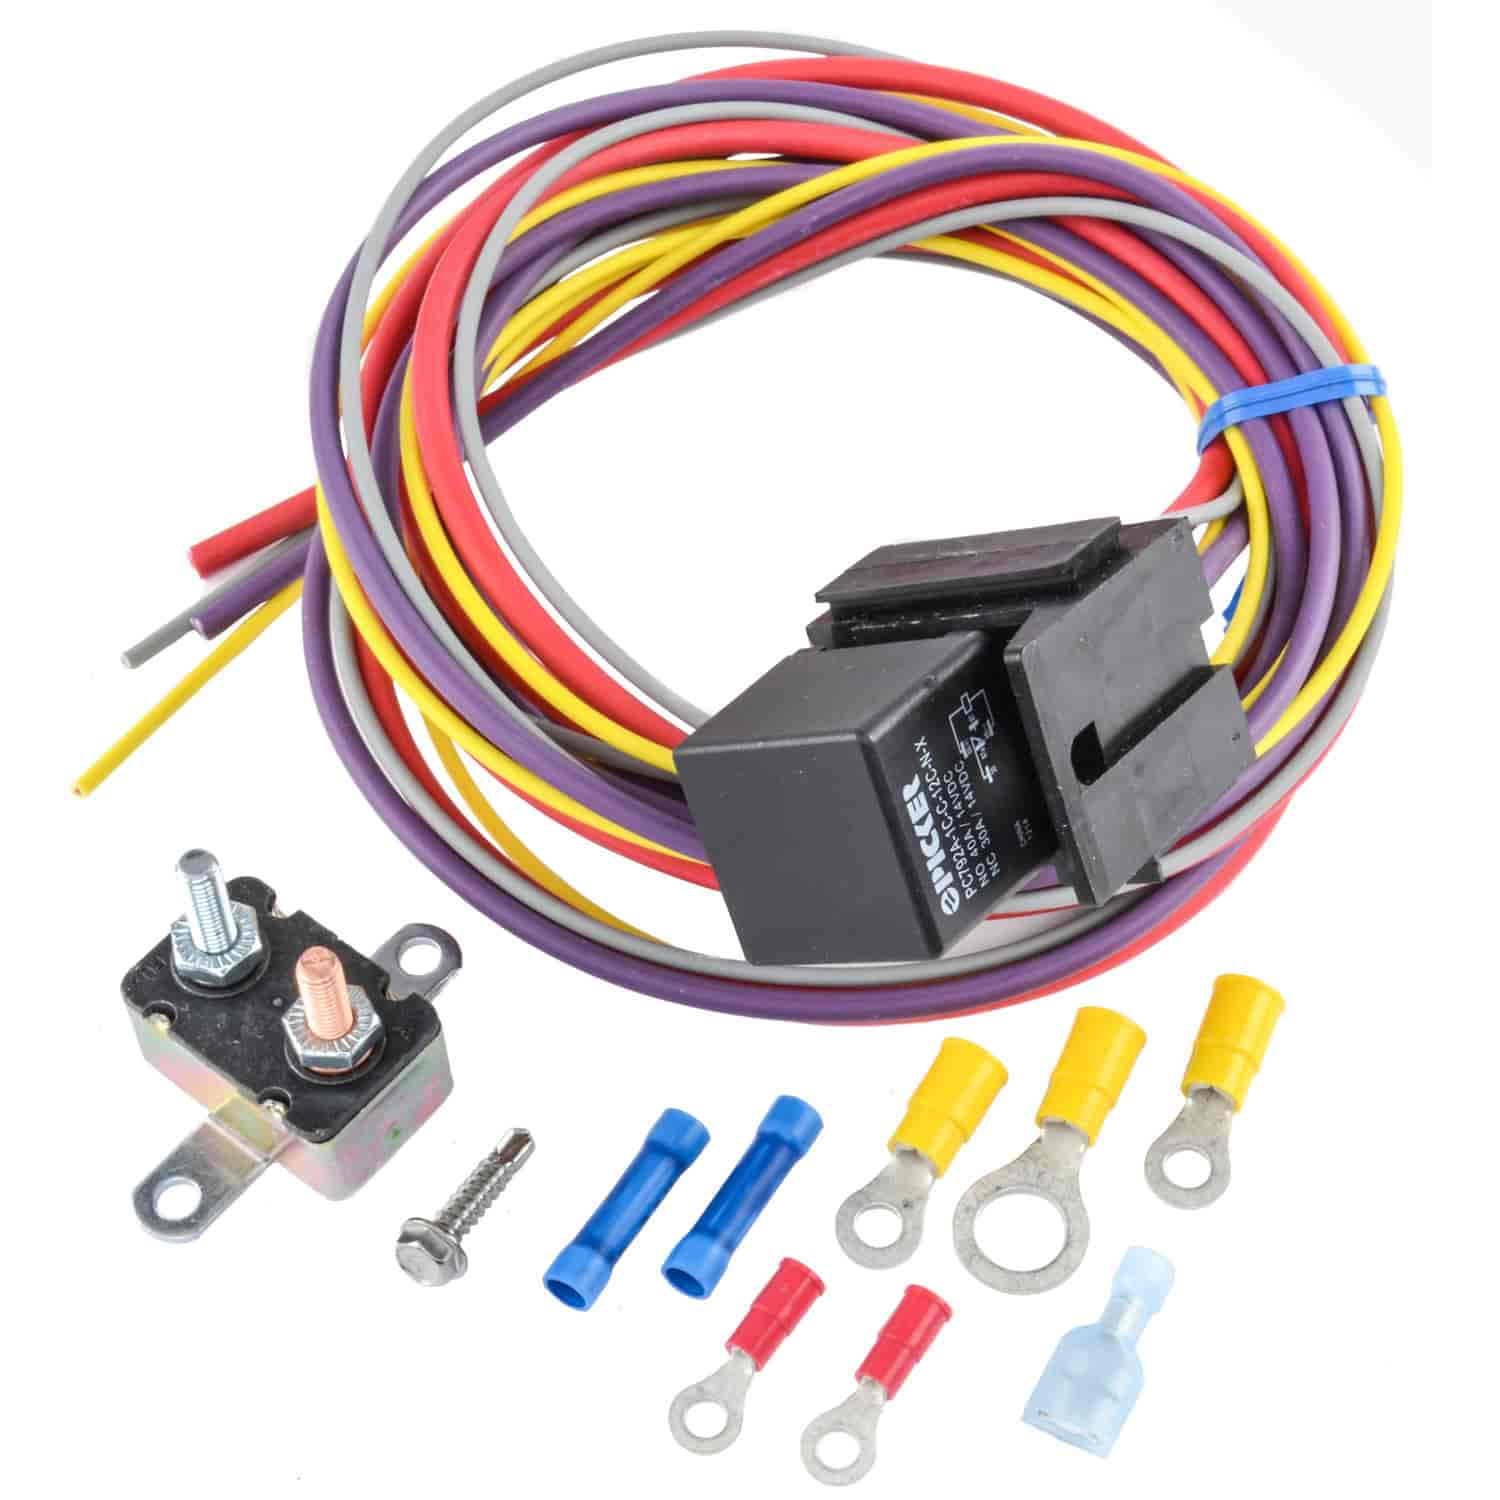 555 10559 jegs performance products 10559 manual controlled single fan VW Wiring Harness Kits at creativeand.co